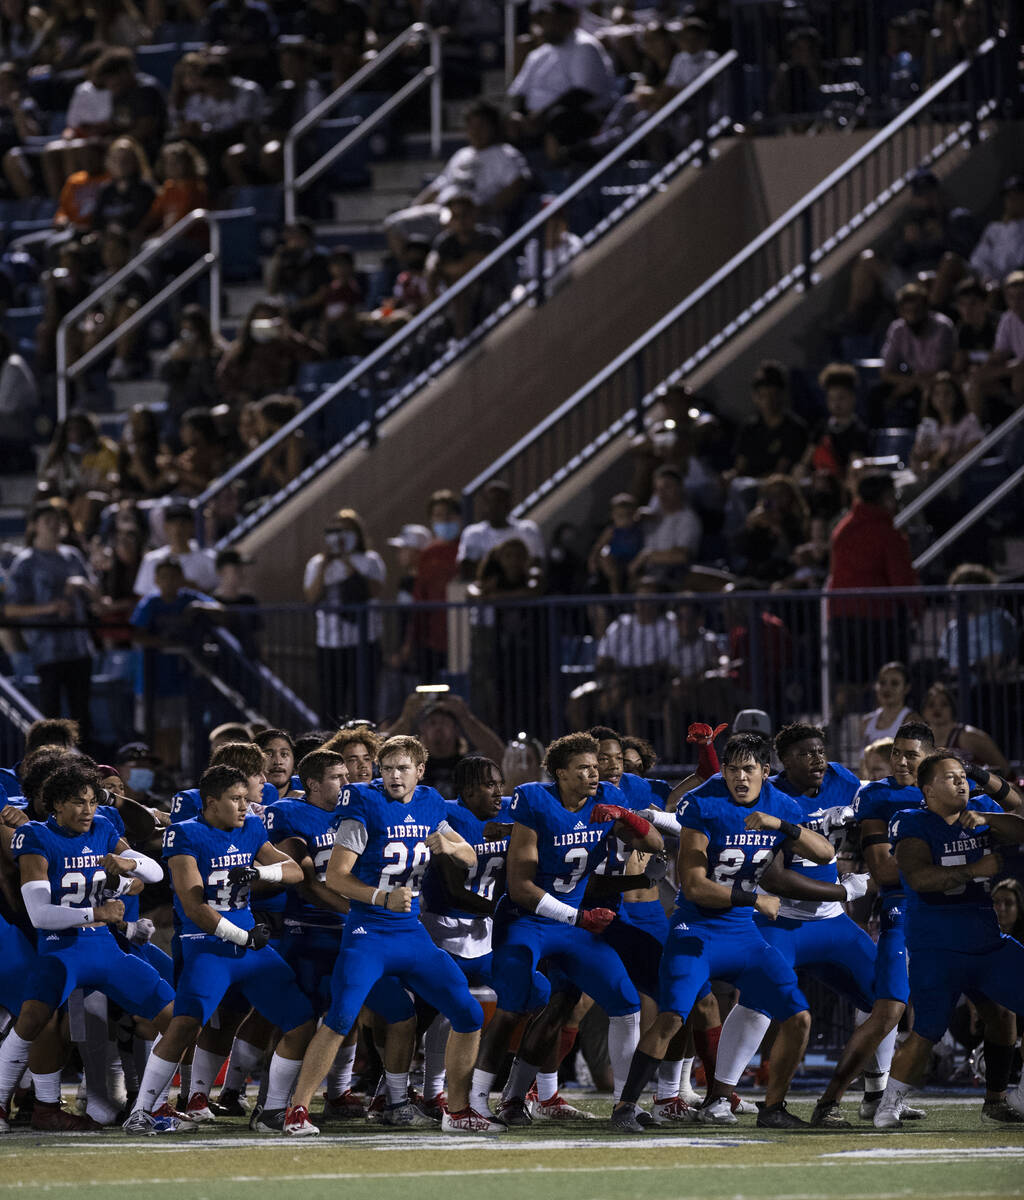 Liberty HighÕs players perform their ritual before facing Mater Dei High of Calif., during ...